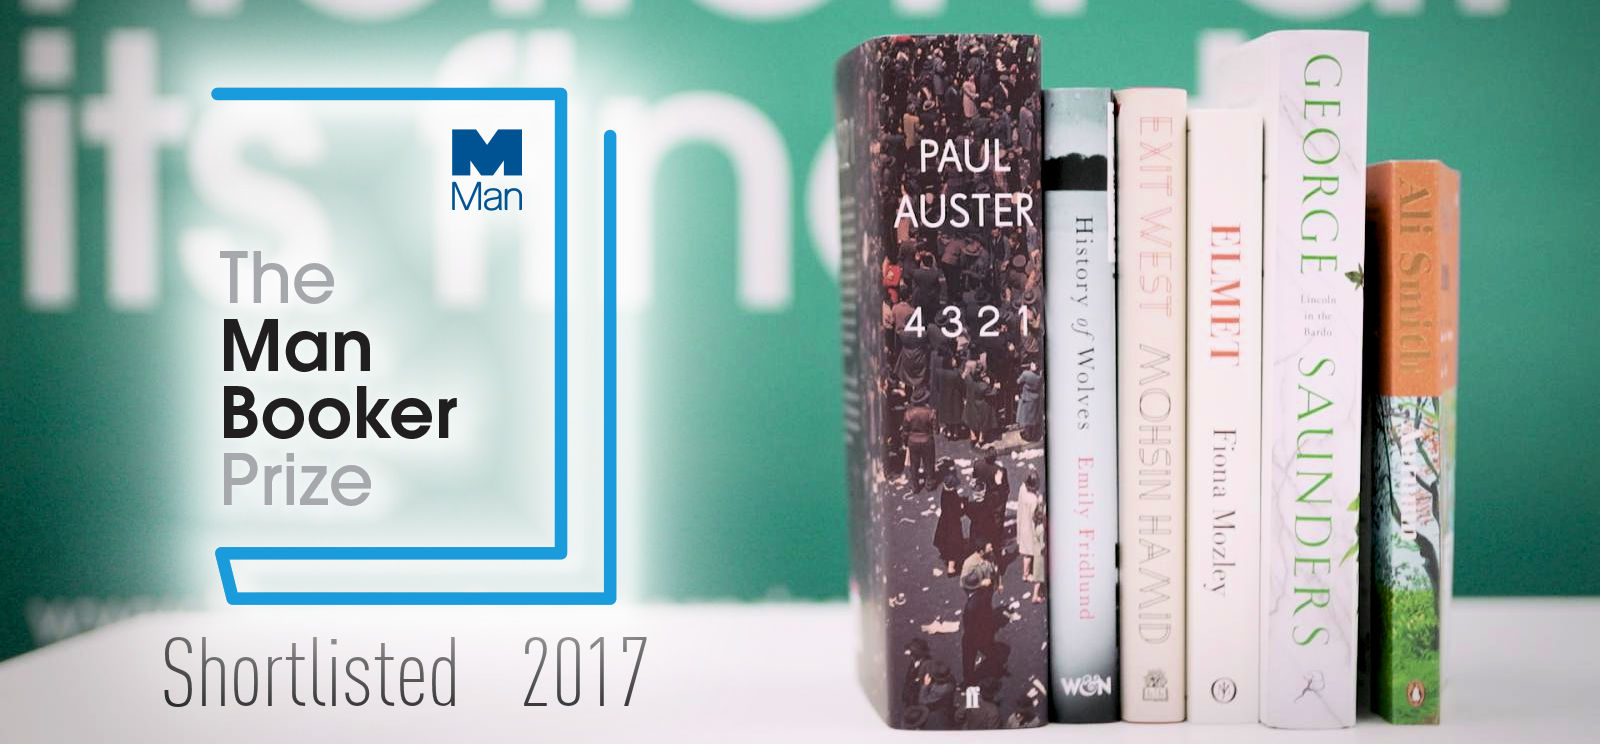 The Man Booker Prize 2017: Ανακοινώθηκε η shortlist!